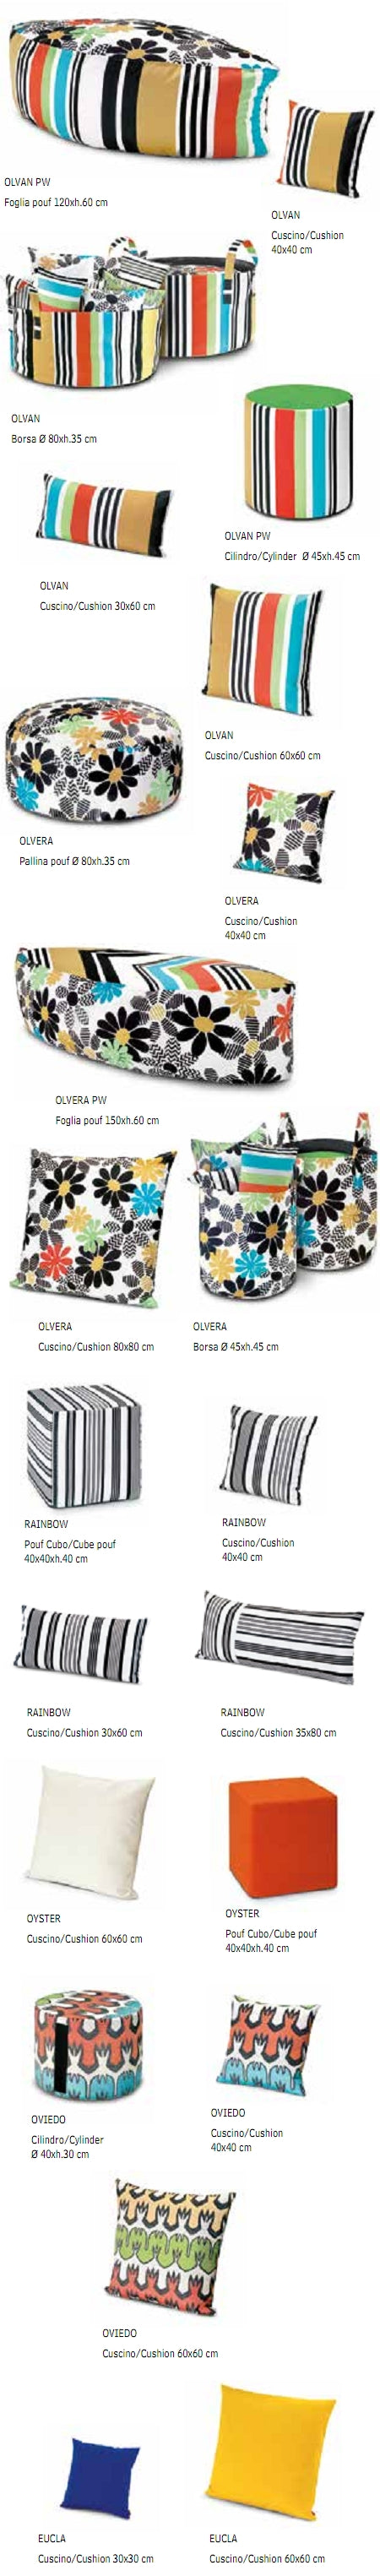 Missoni Cushion and Footstool Collection - Margherita Outdoor - italydesign.com